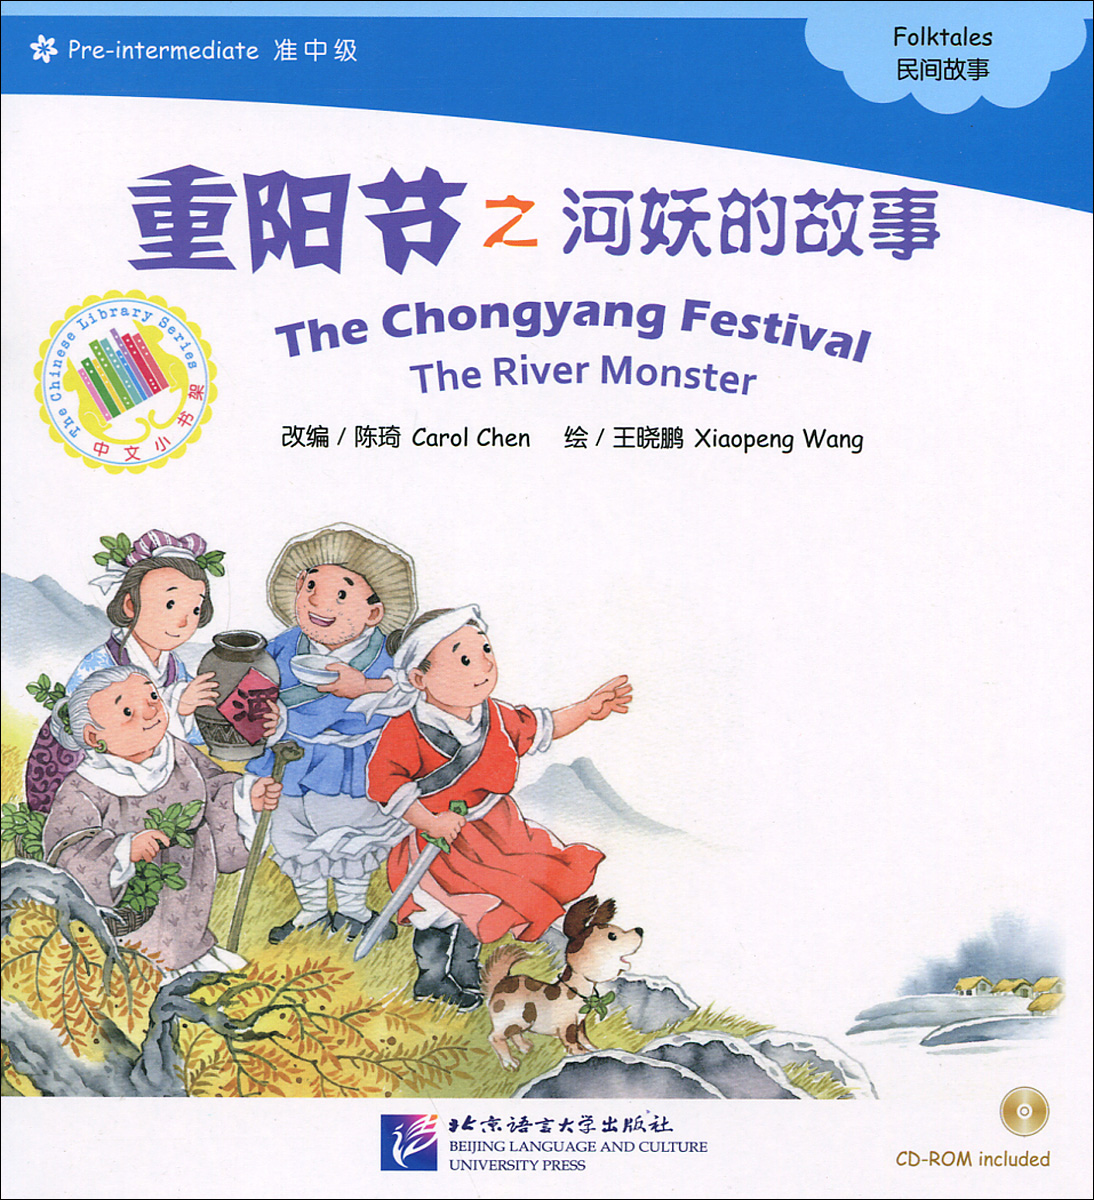 The Chongyang Festival: The River Monster: Folktales: Pre-intermediate (+ CD-ROM) chen c the duanwu festival qu yuan folktales праздник драконьих лодок адаптированная книга для чтения cd rom